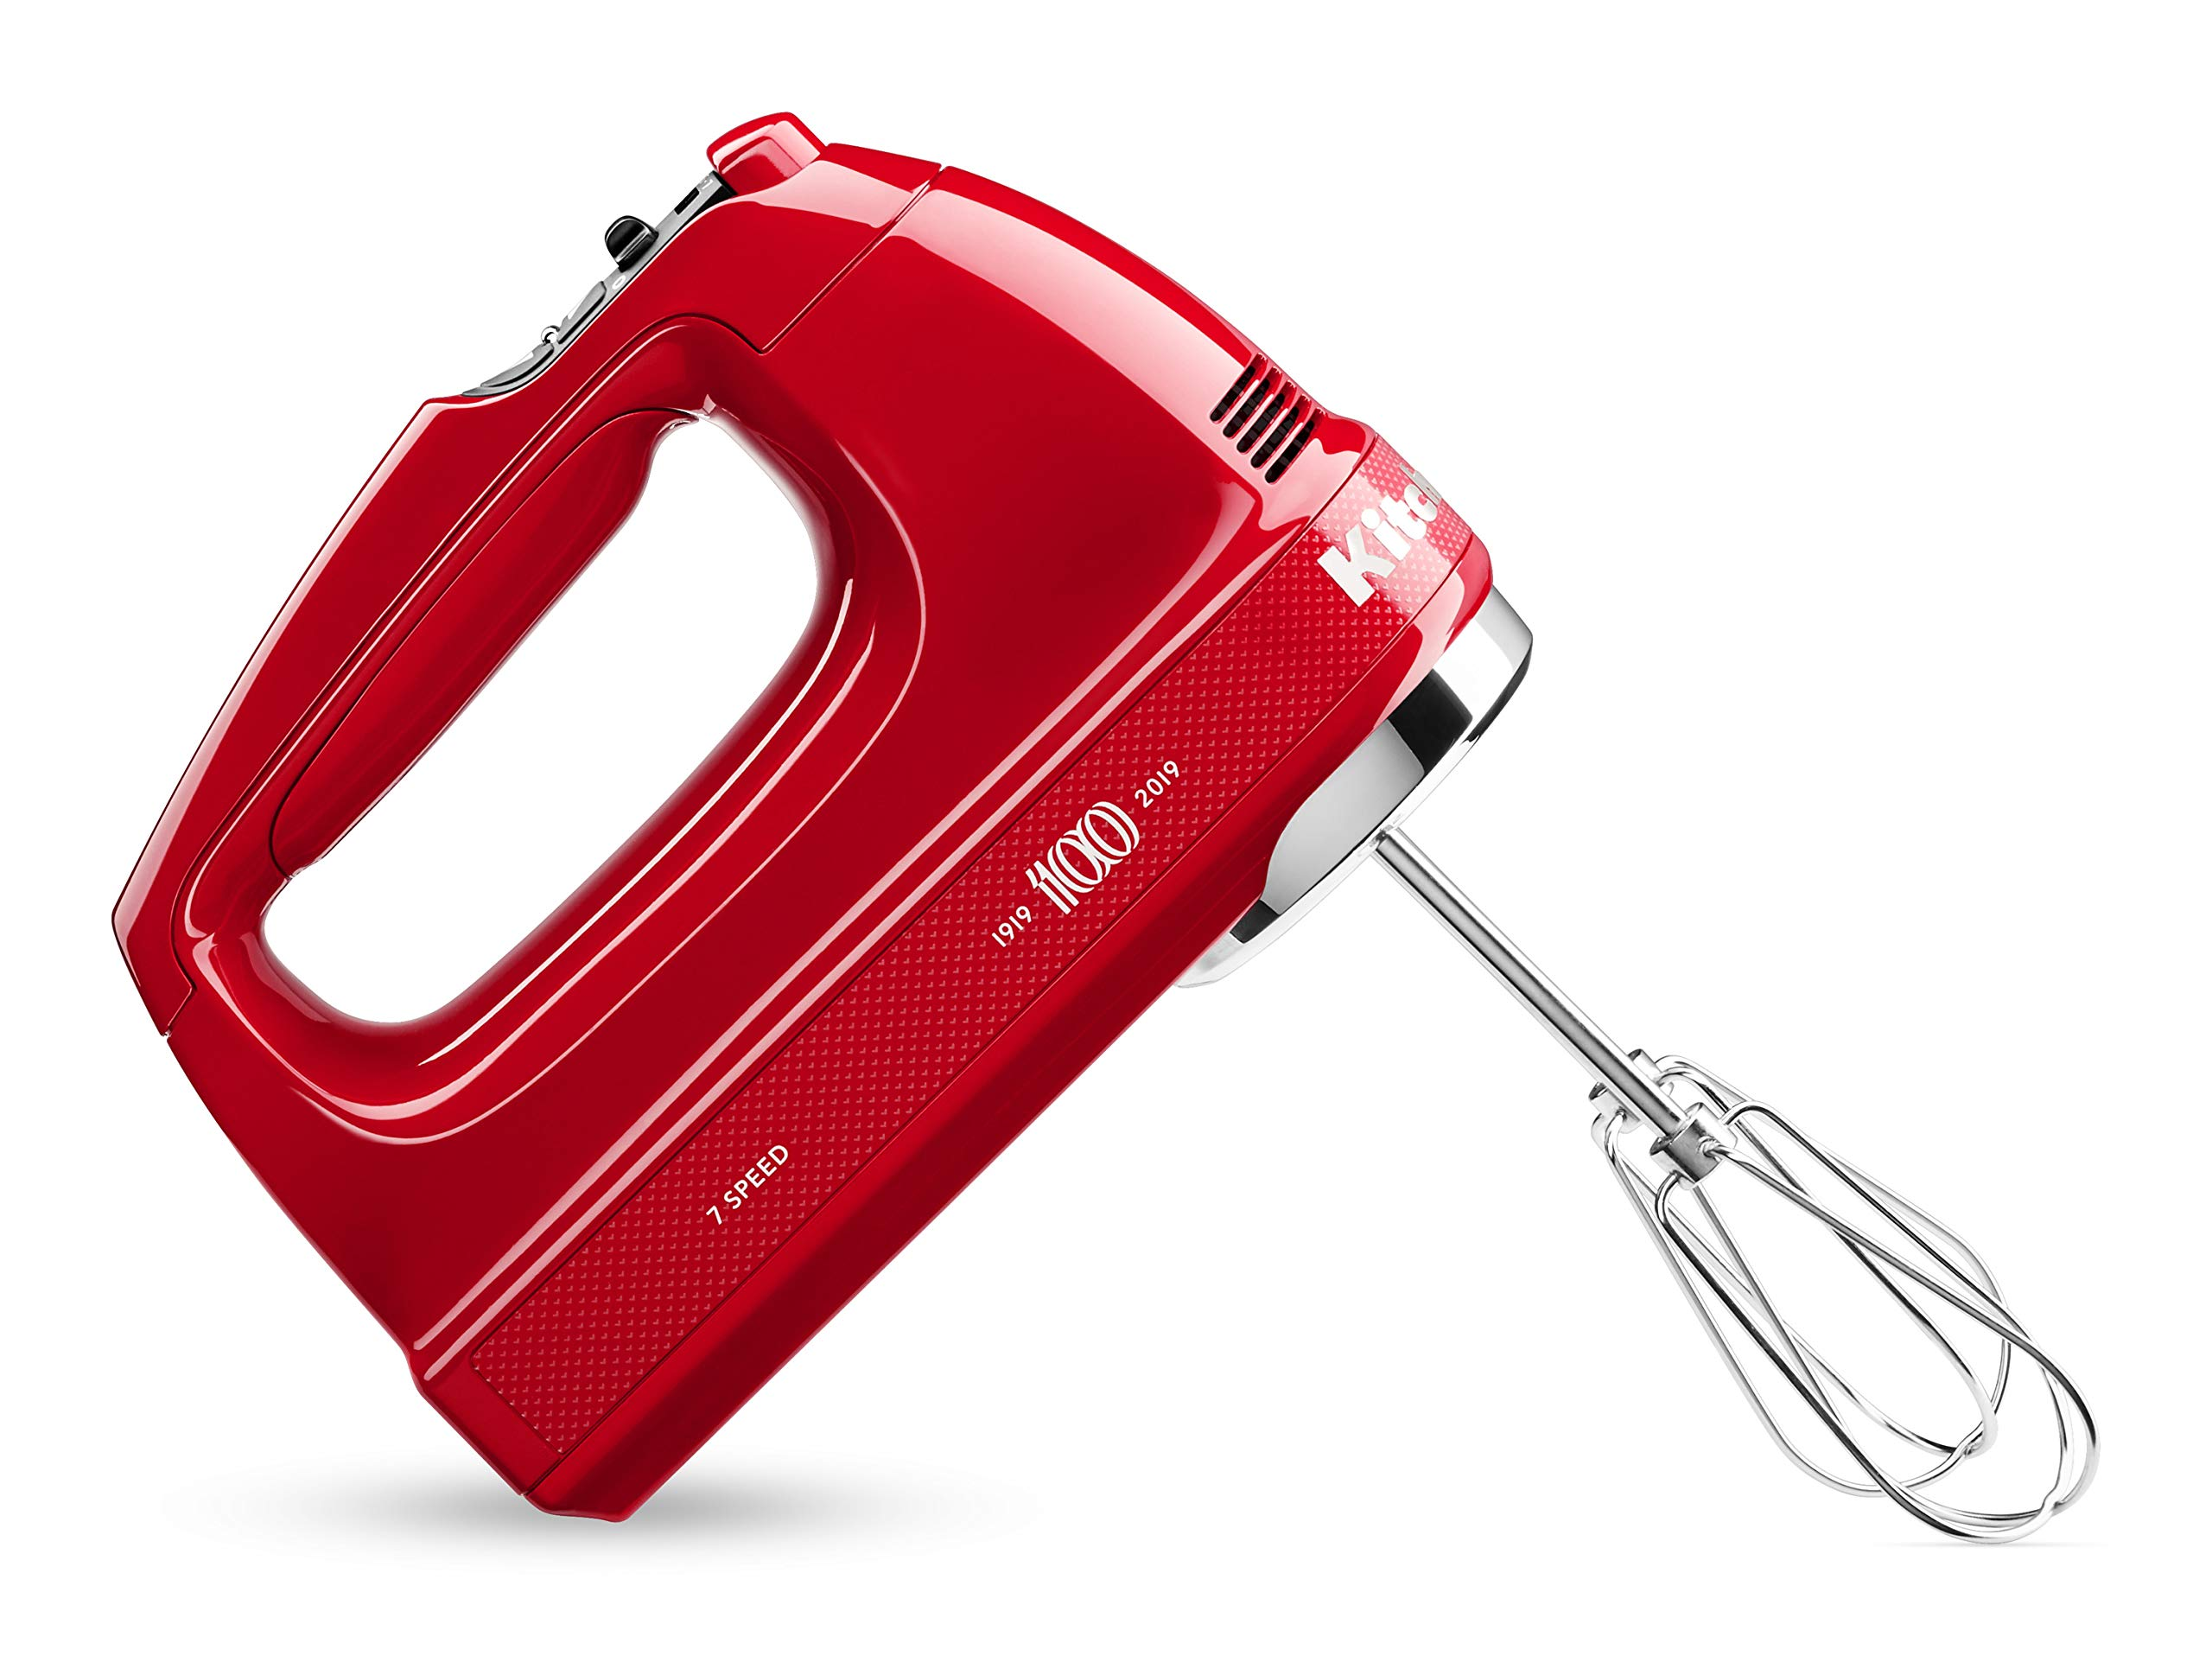 KitchenAid KHM7210QHSD 100 Year Limited Edition Queen of Hearts Hand Mixer, 7 Speed, Passion Red by KitchenAid (Image #1)